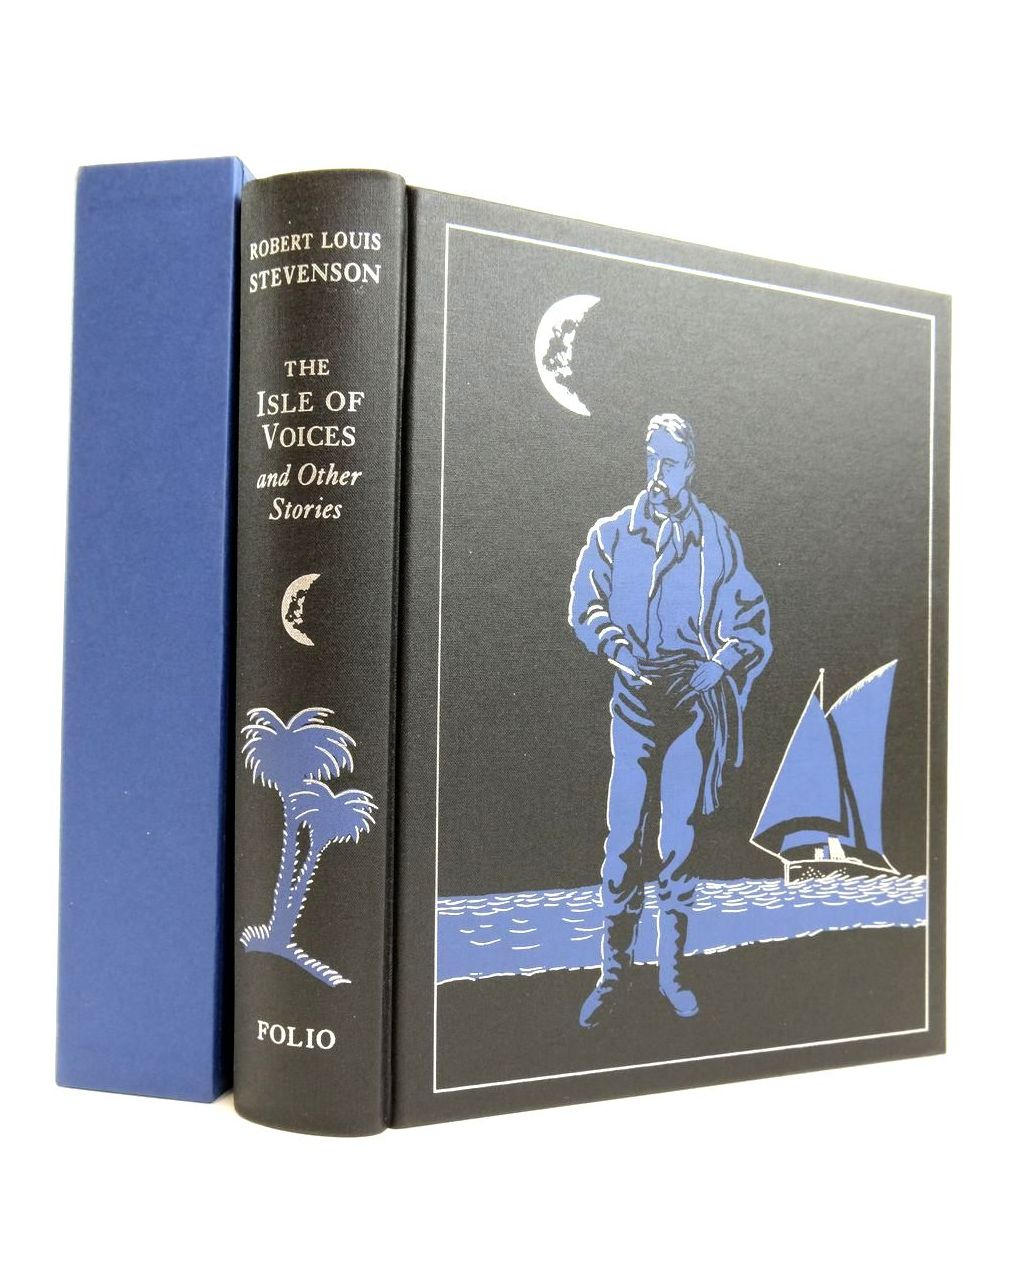 Photo of THE ISLE OF VOICES AND OTHER STORIES written by Stevenson, Robert Louis illustrated by Foreman, Michael published by Folio Society (STOCK CODE: 1821486)  for sale by Stella & Rose's Books